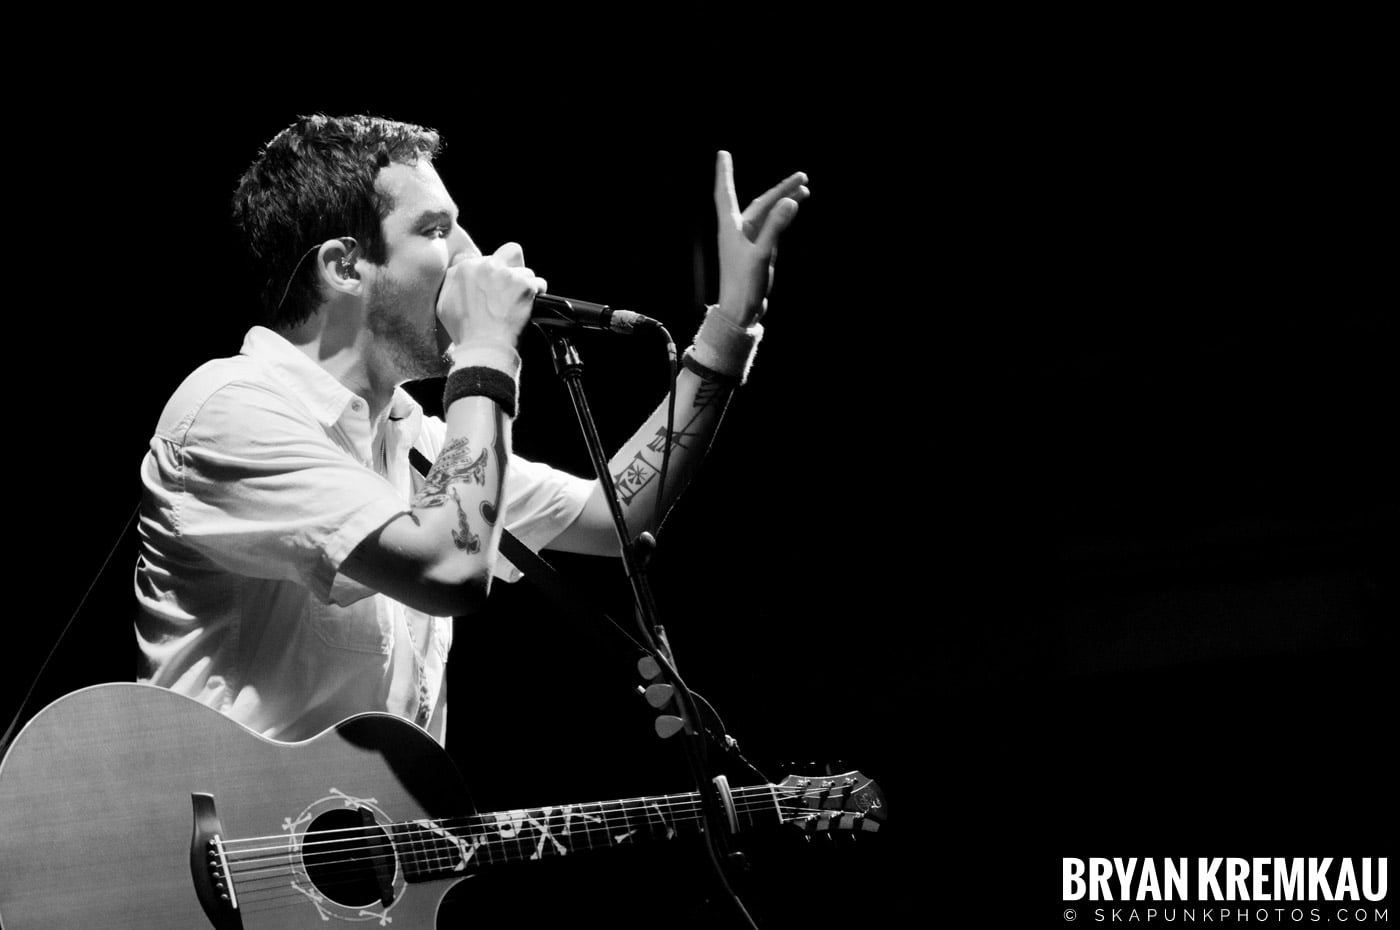 Frank Turner & The Sleeping Souls @ Webster Hall, NYC - 9.29.12 (5)